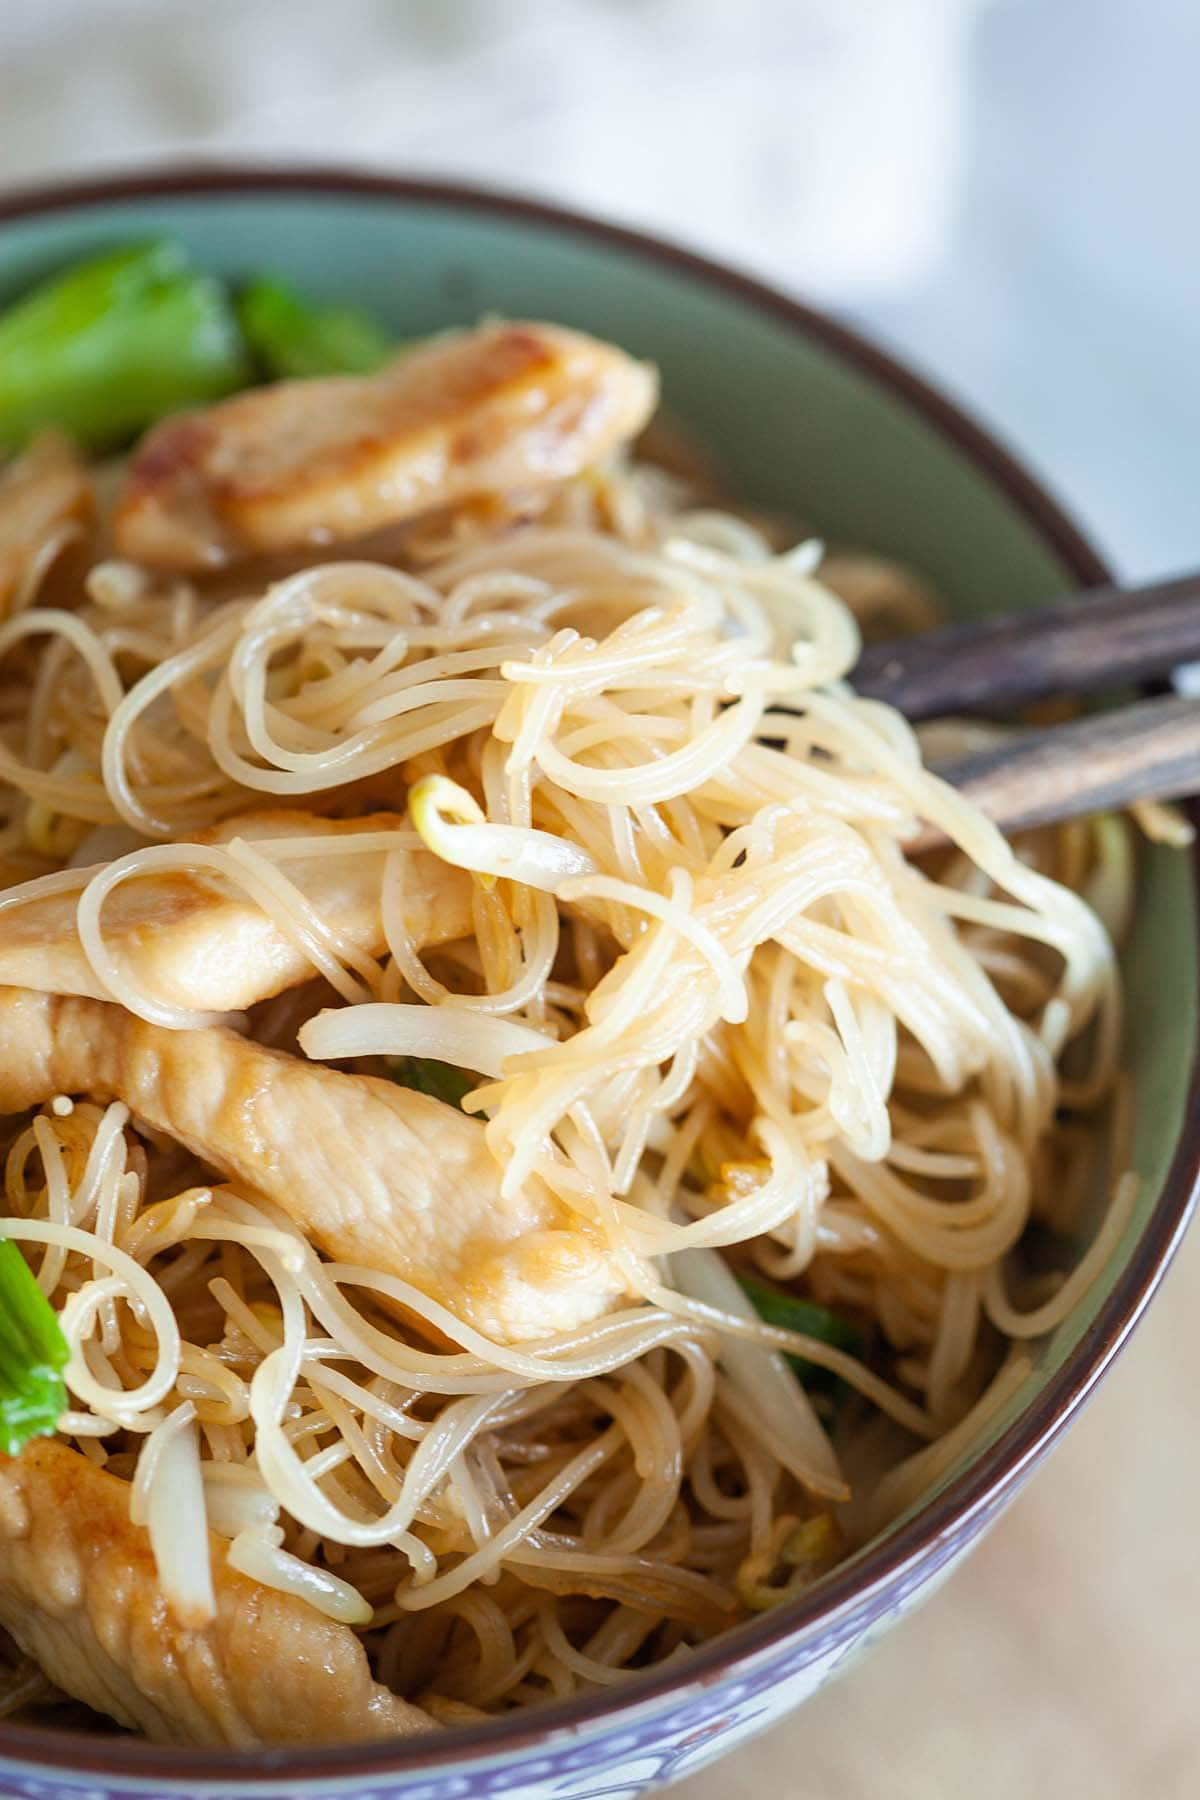 Vermicelli cooked with chicken and vegetables.